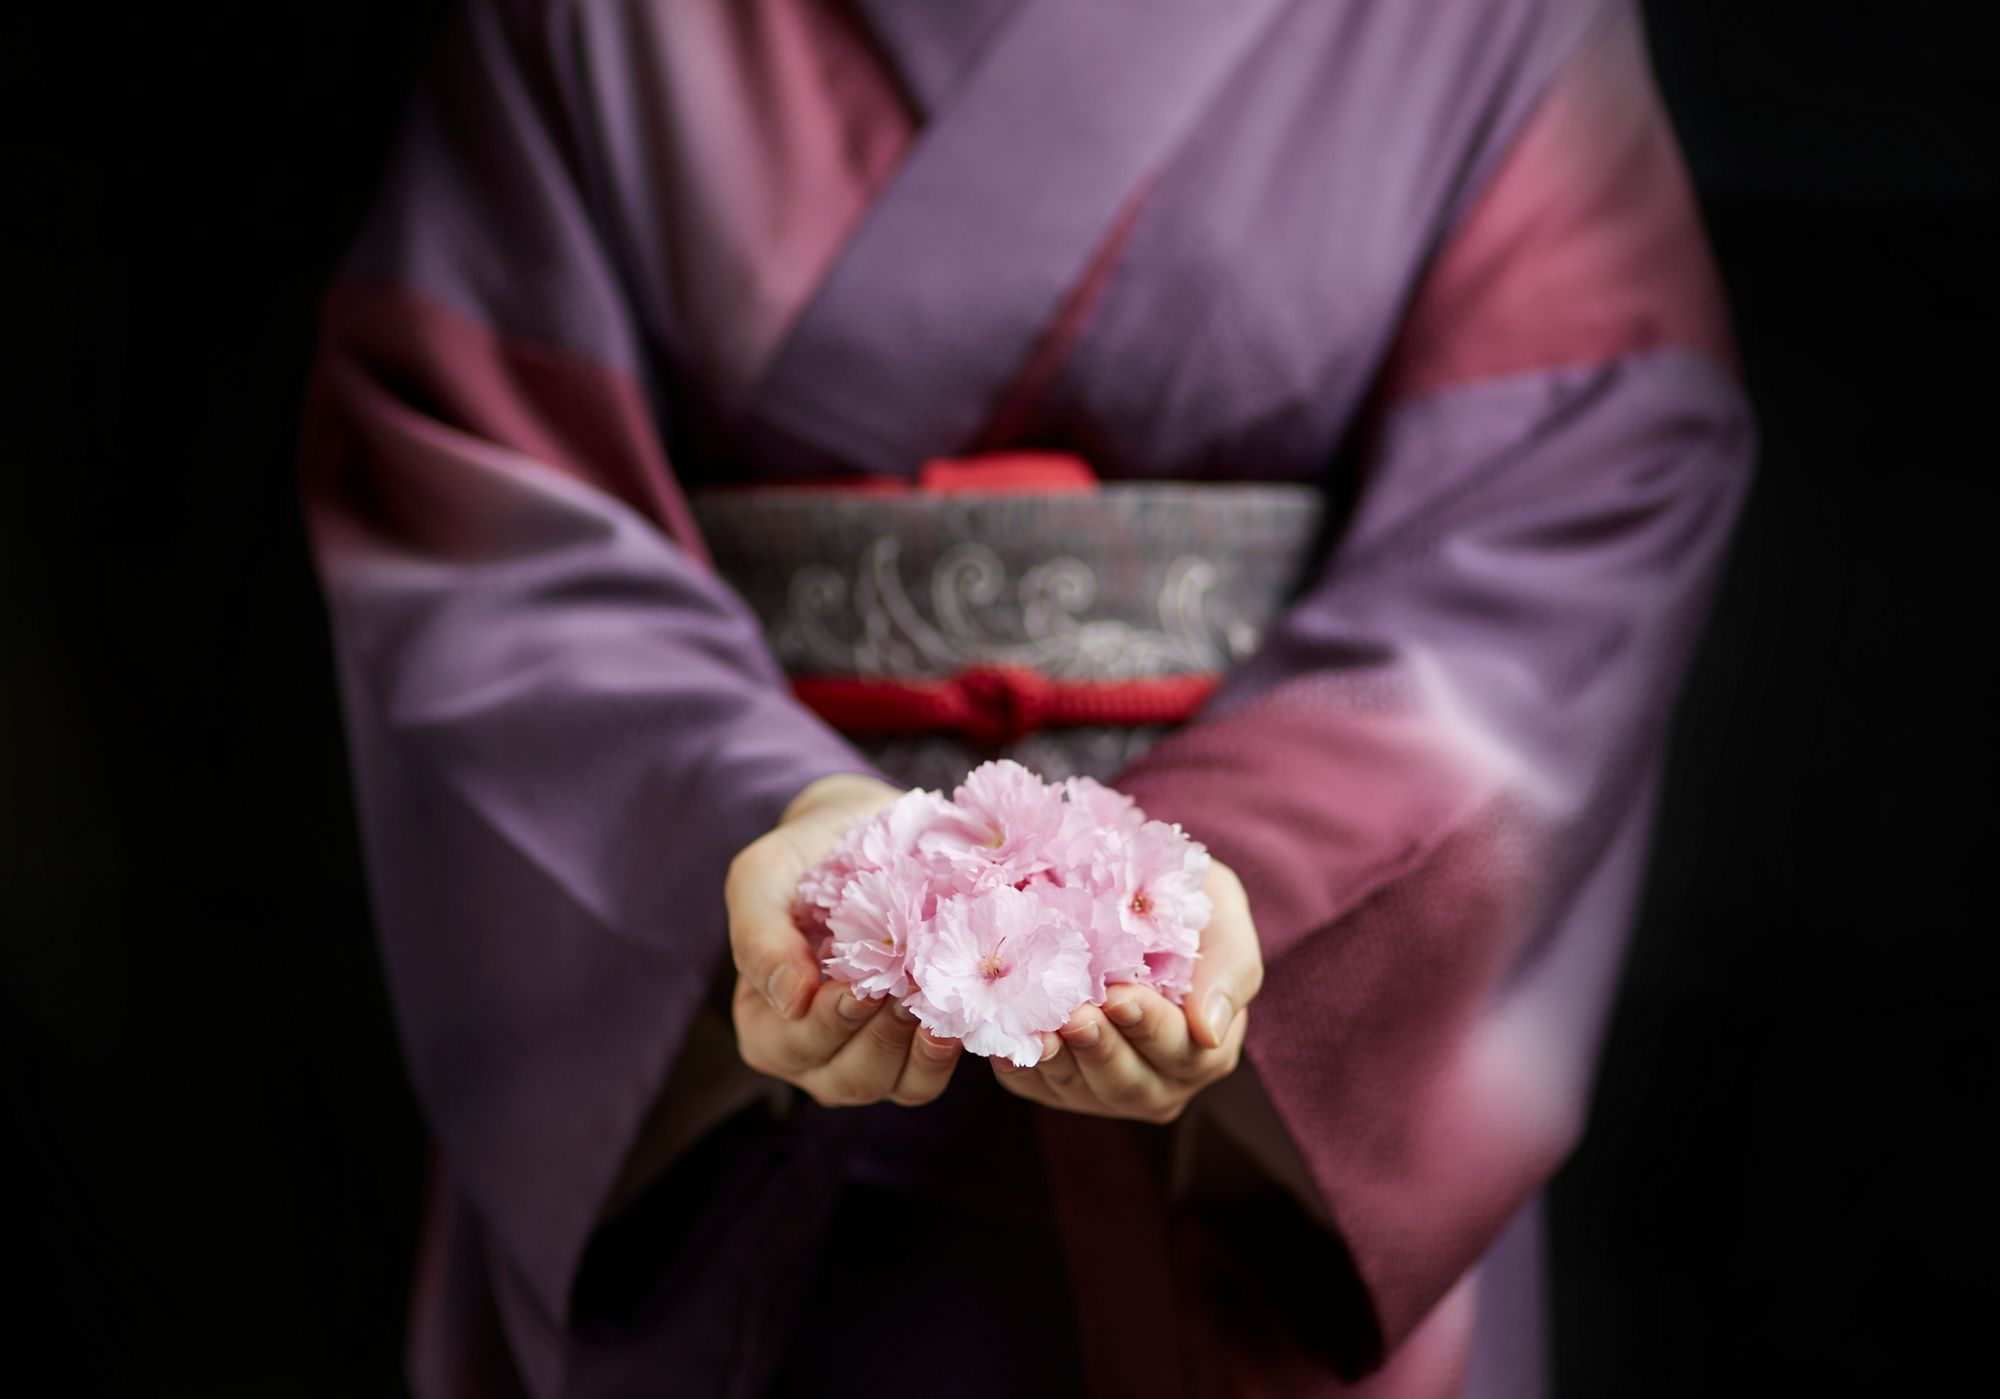 Woman wears a purple ombre kimono with her hands cupped in front of her holding pink blossoms